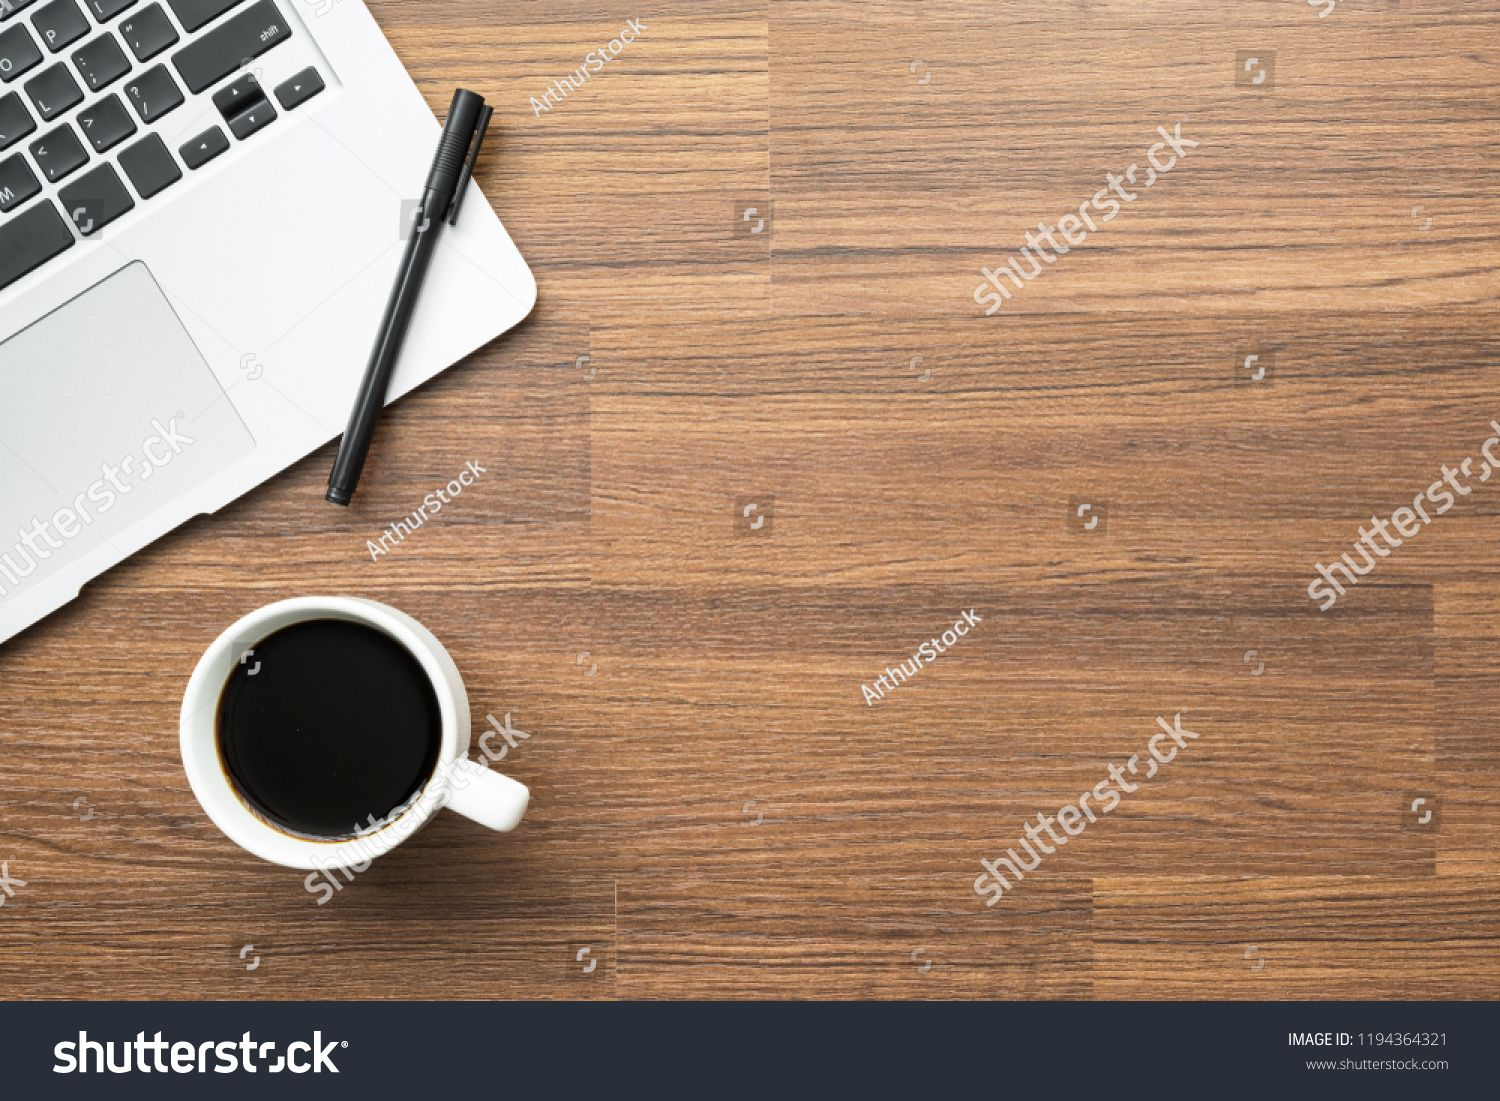 Wood Office Desk Table With Laptop Pen And Cup Of Coffee Top